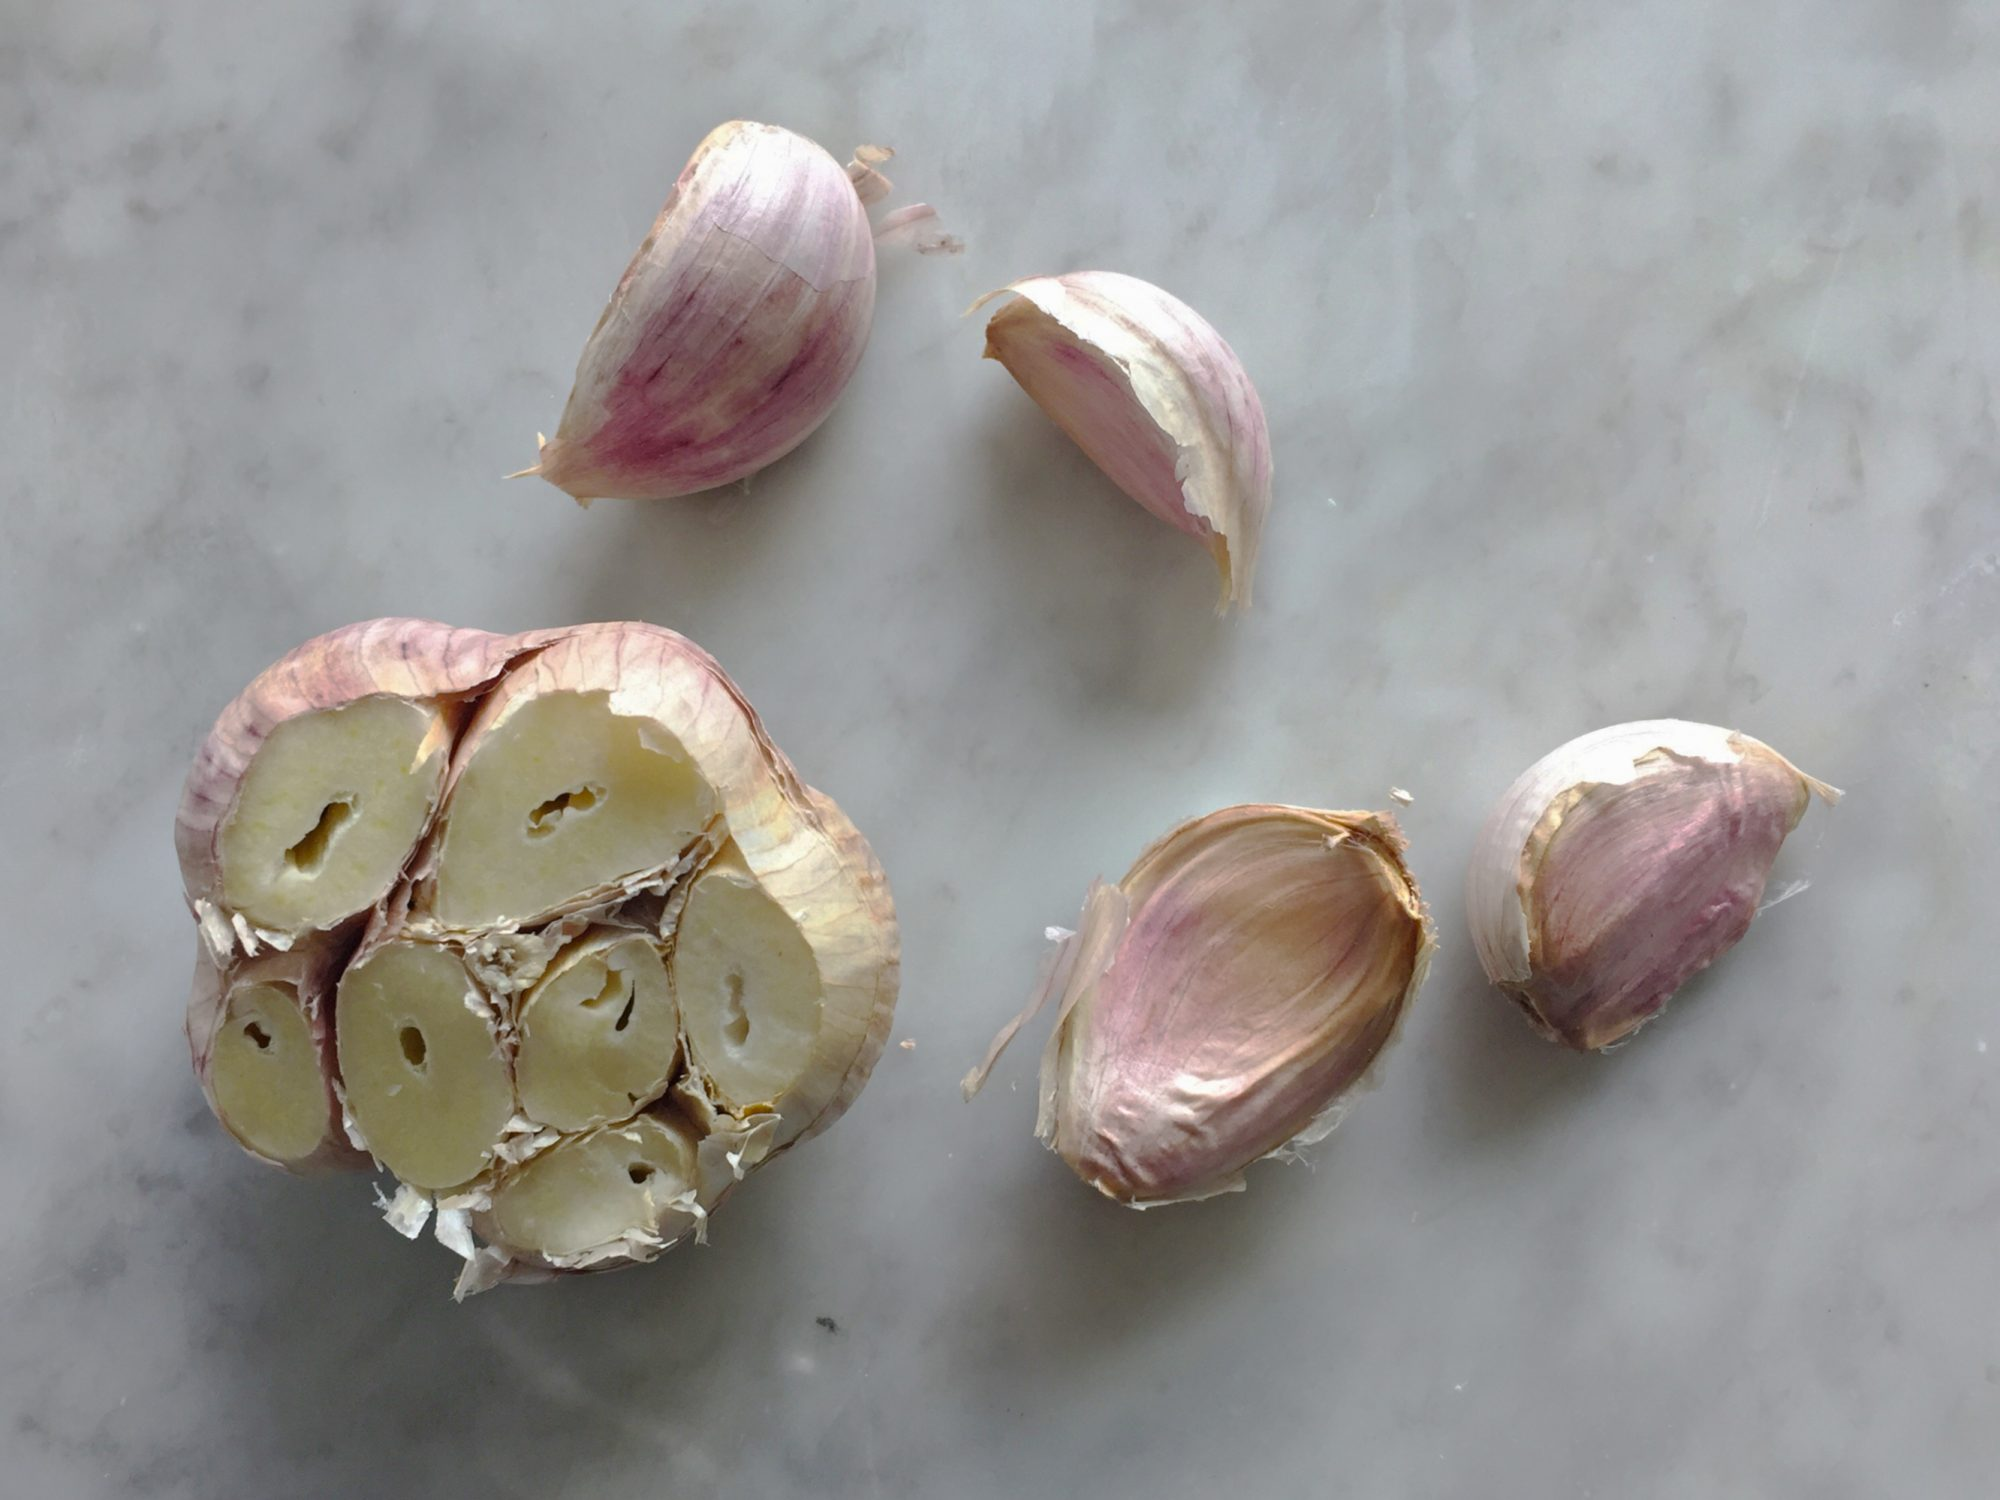 Leave the skin on roast garlic to keep in from drying out in the oven.